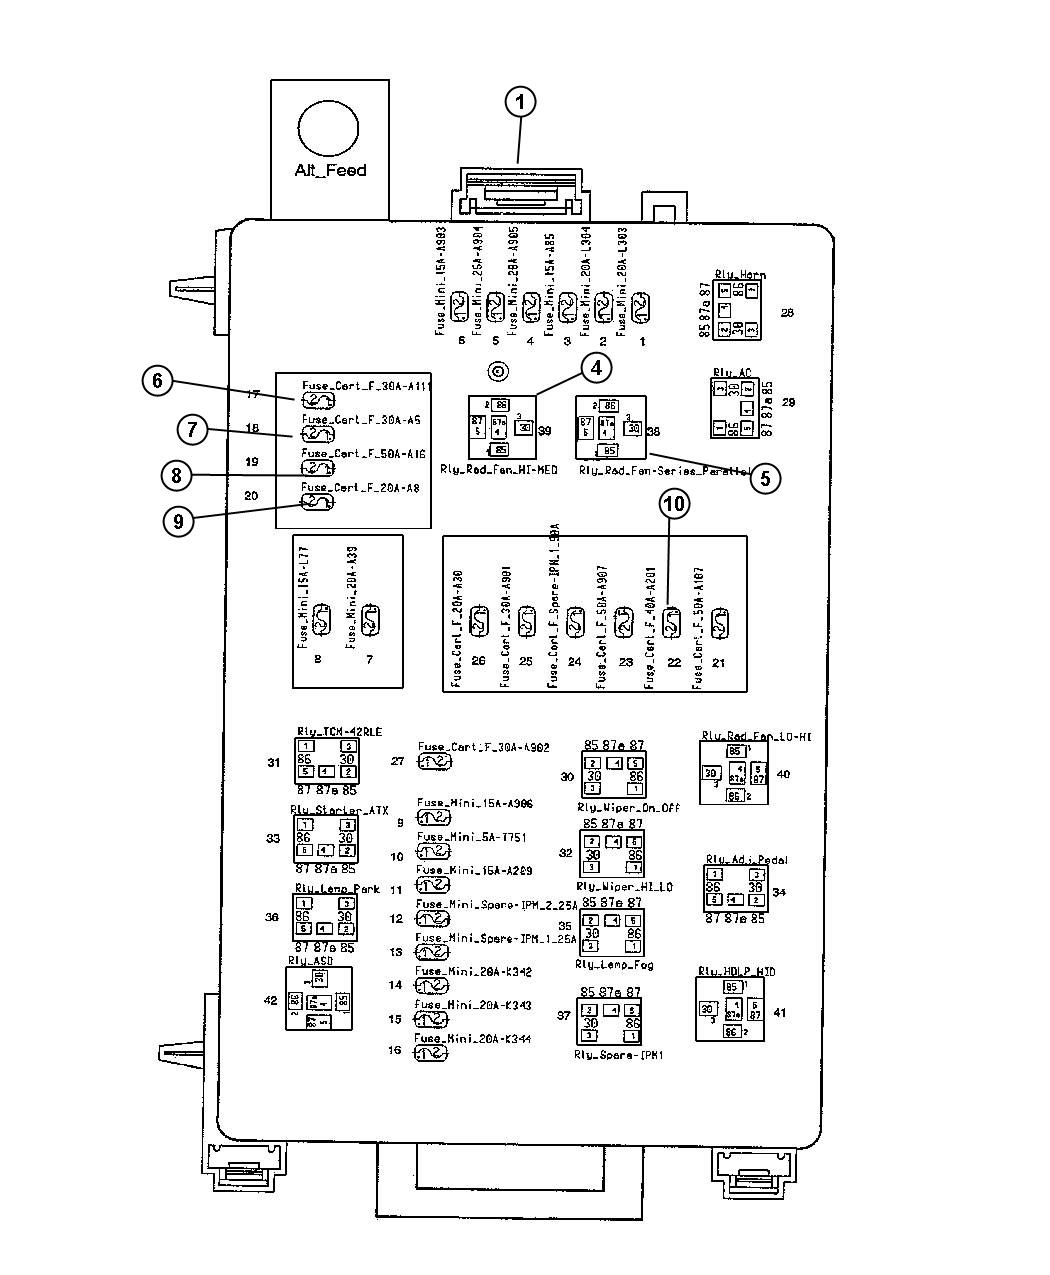 Dodge Charger Power Distribution Center Relays And Fuses